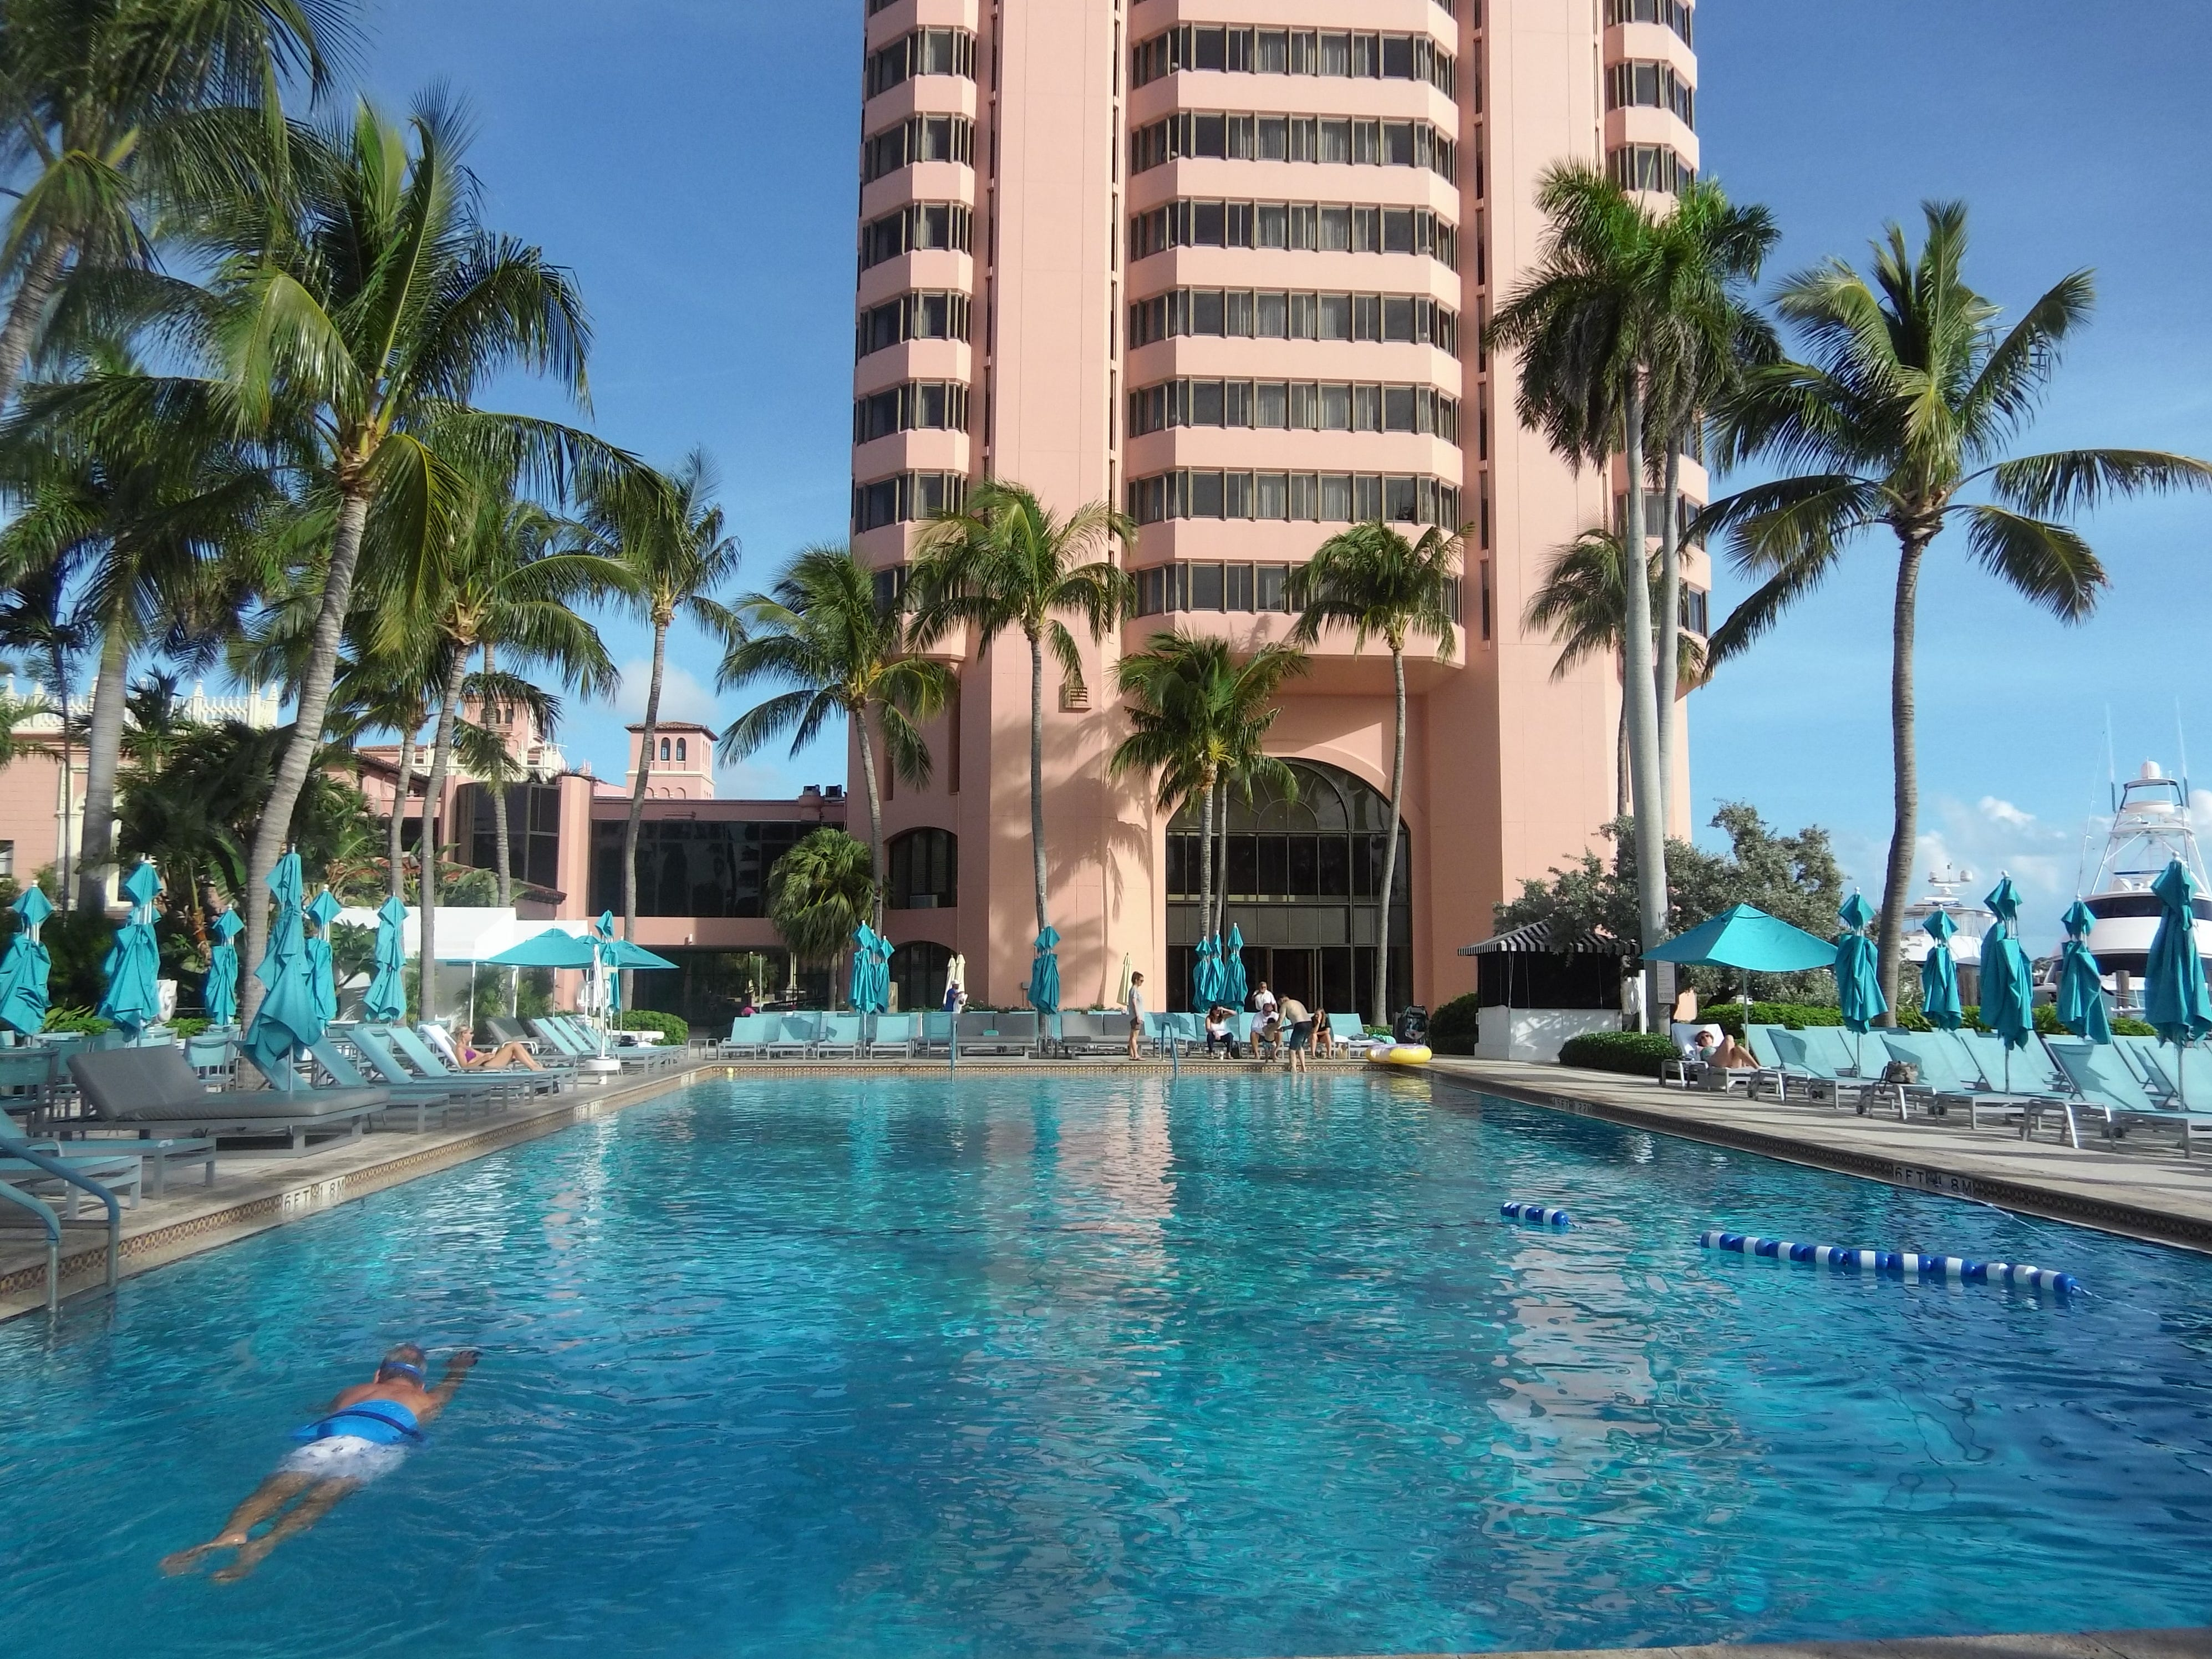 The pool at The Tower is one of seven pools found throughout Boca Raton Resort & Club.